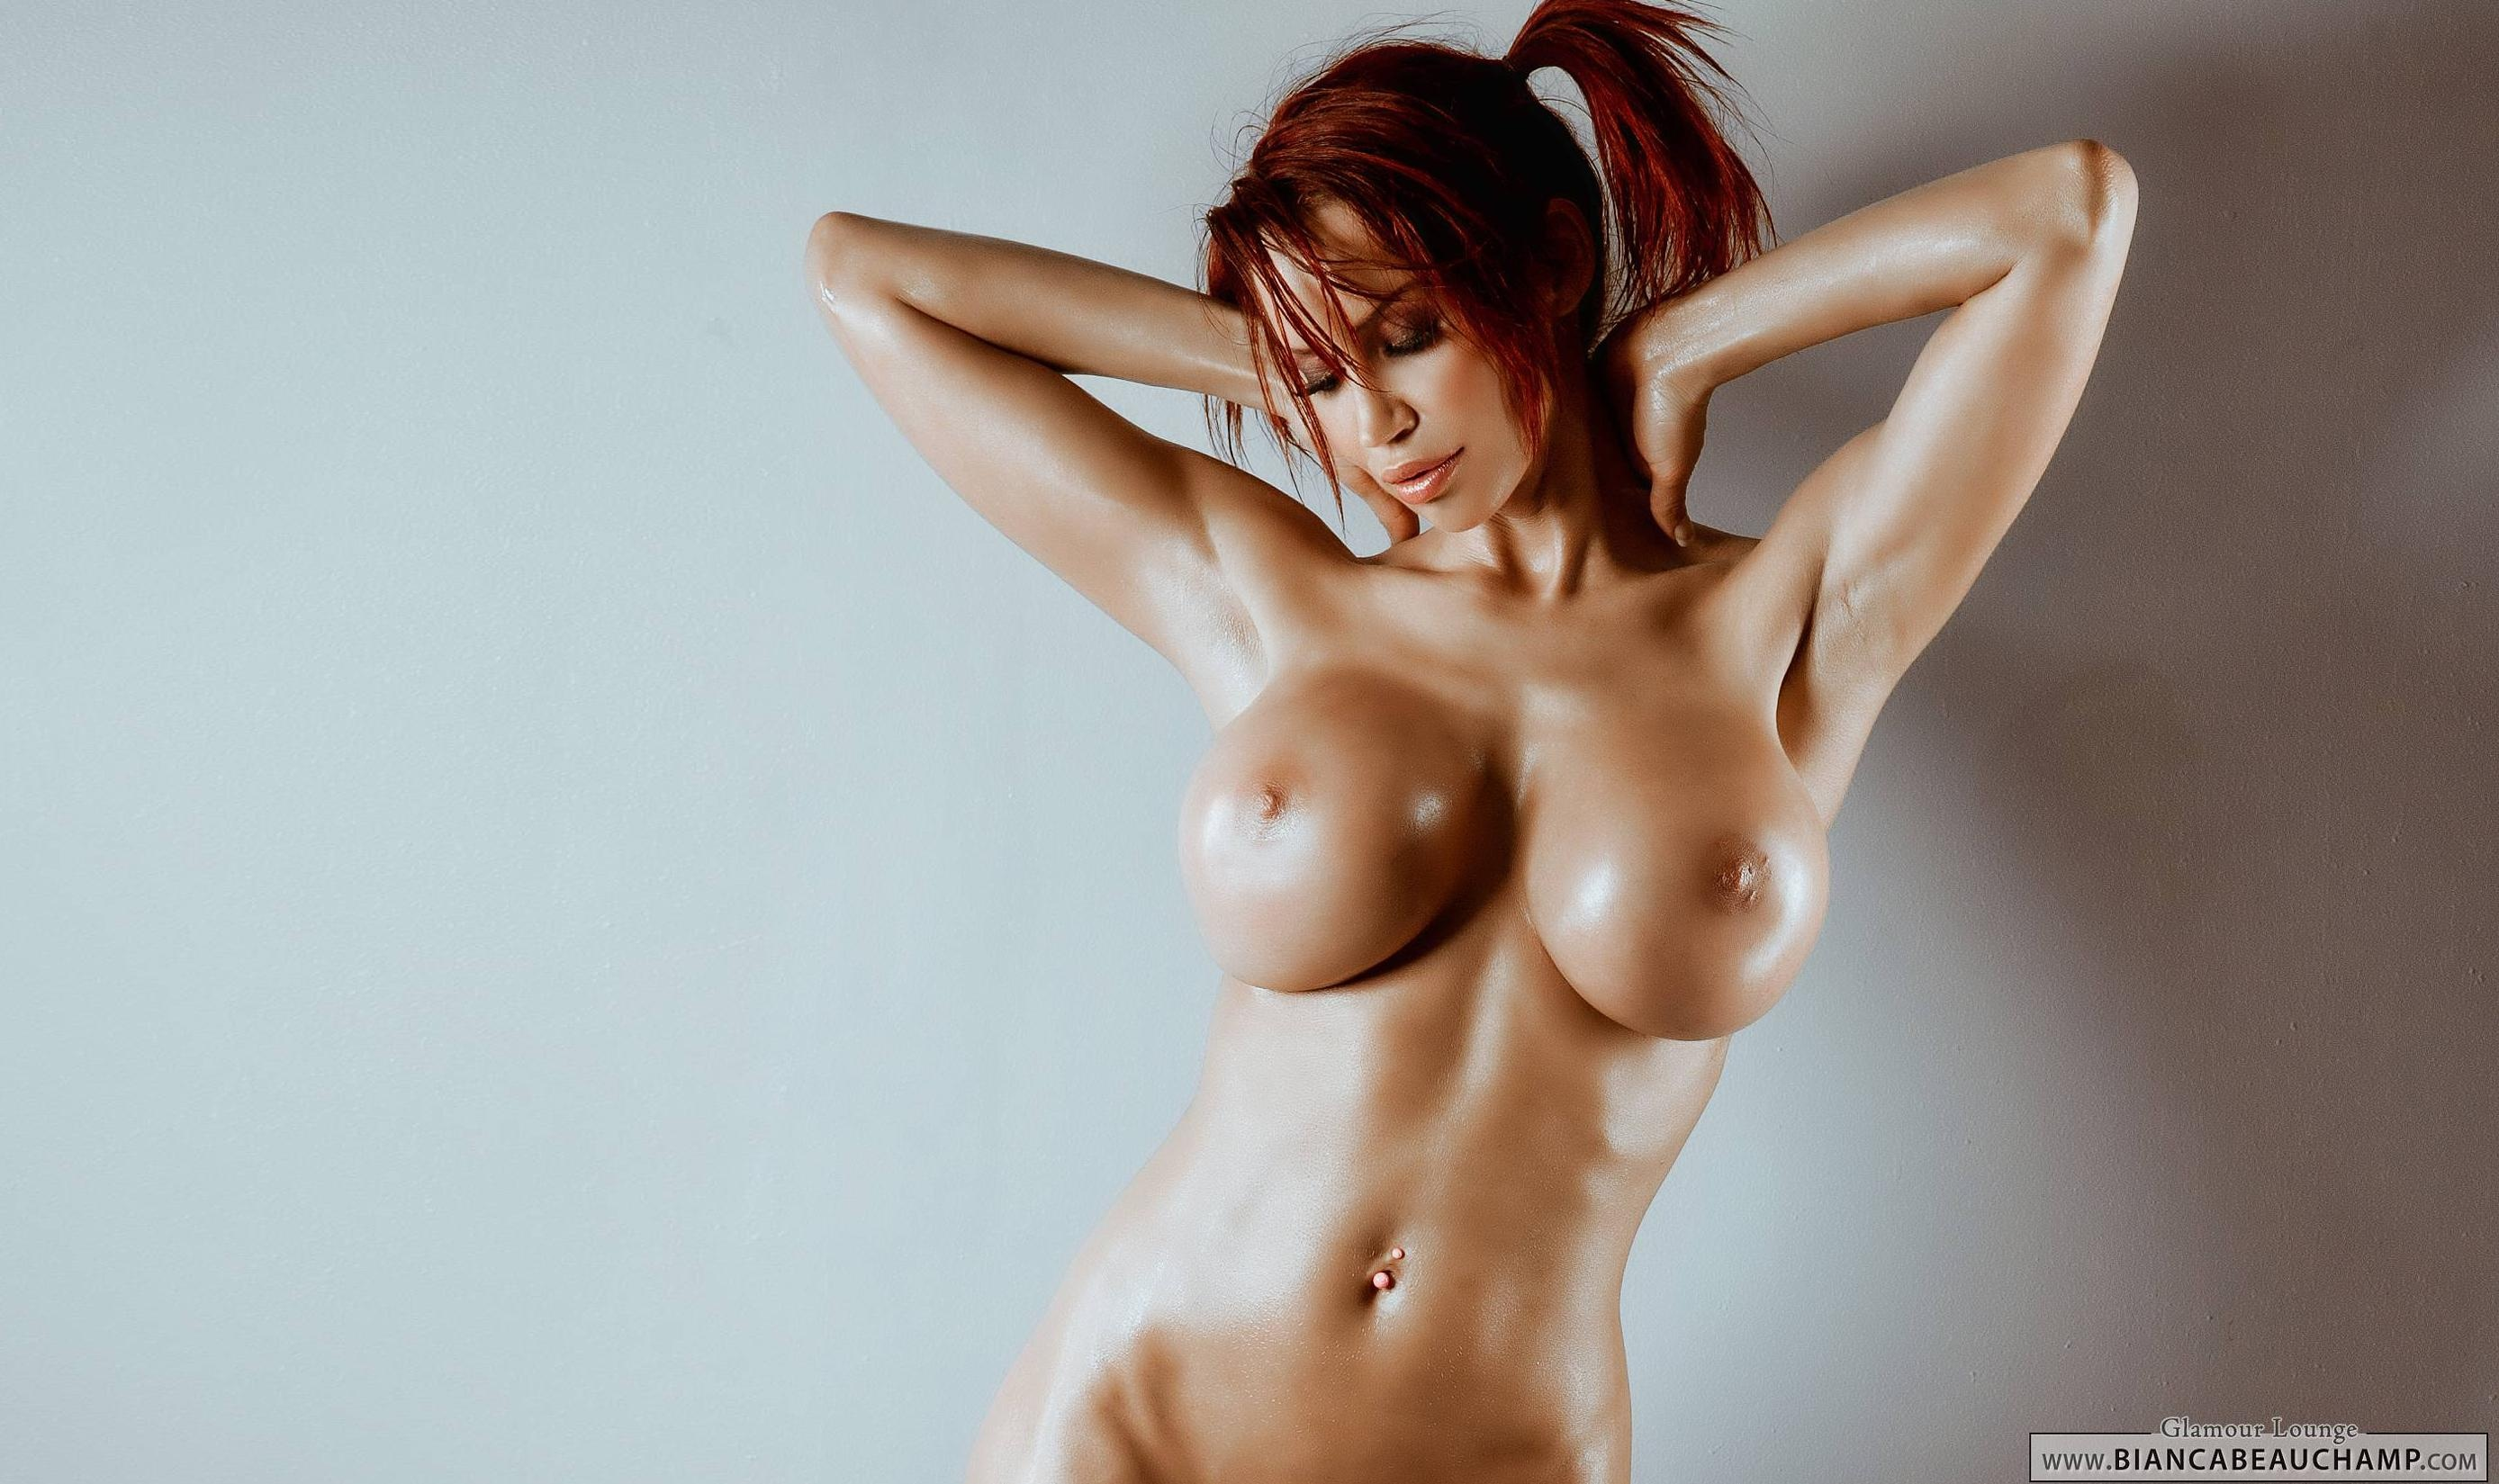 Wallpaper Bianca Beauchamp, Canadian, Fetish Supermodel, Redhead, Long -1495